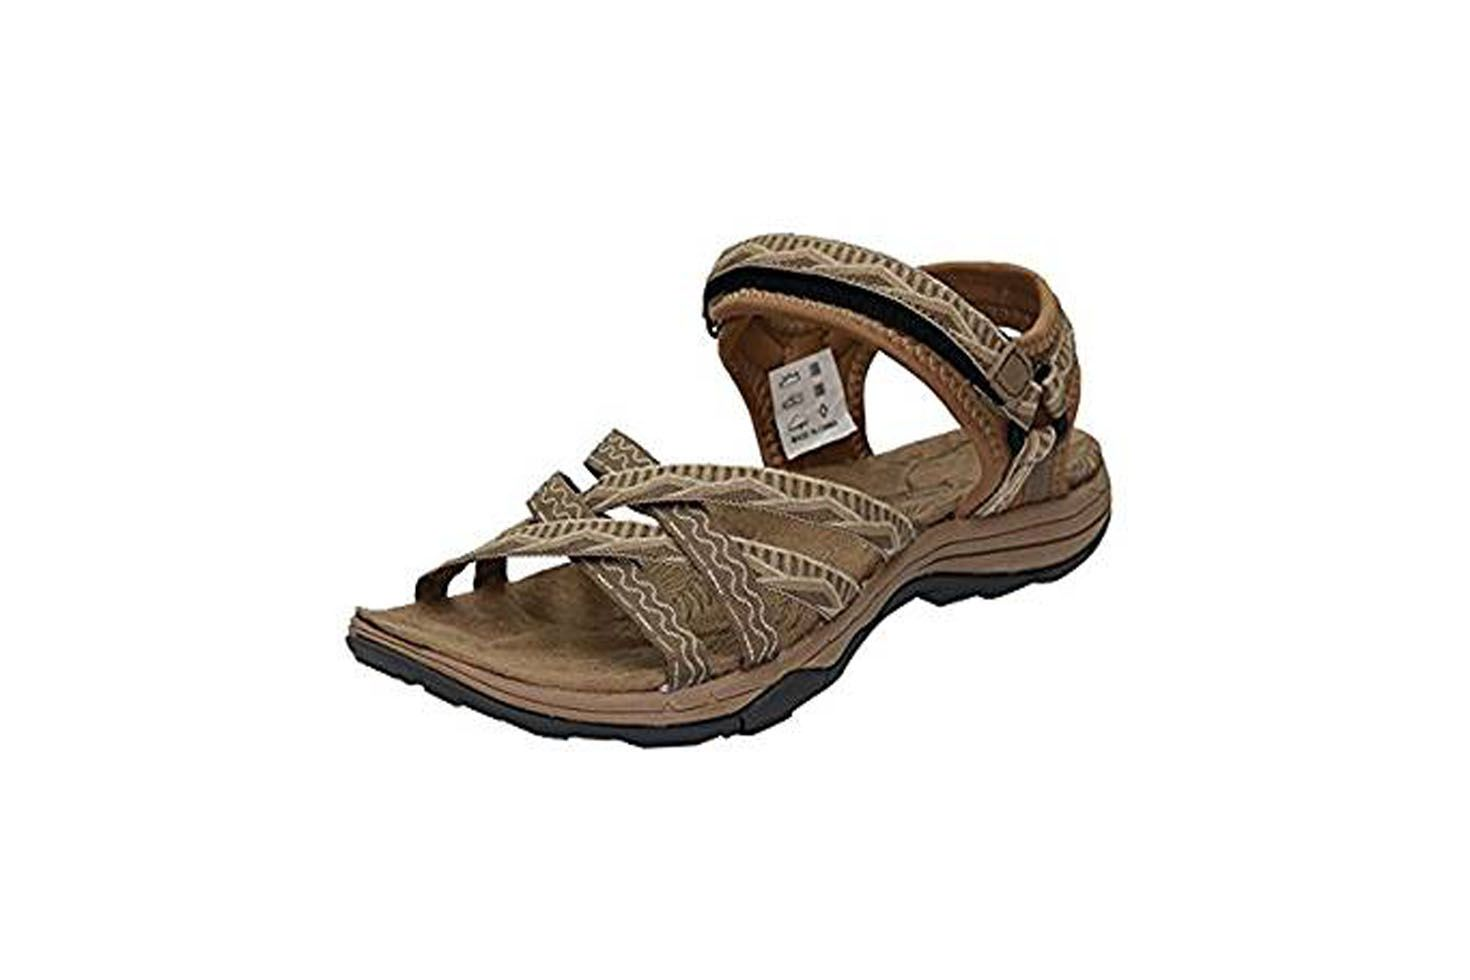 hiking sandals womens gritiron hiking sandals